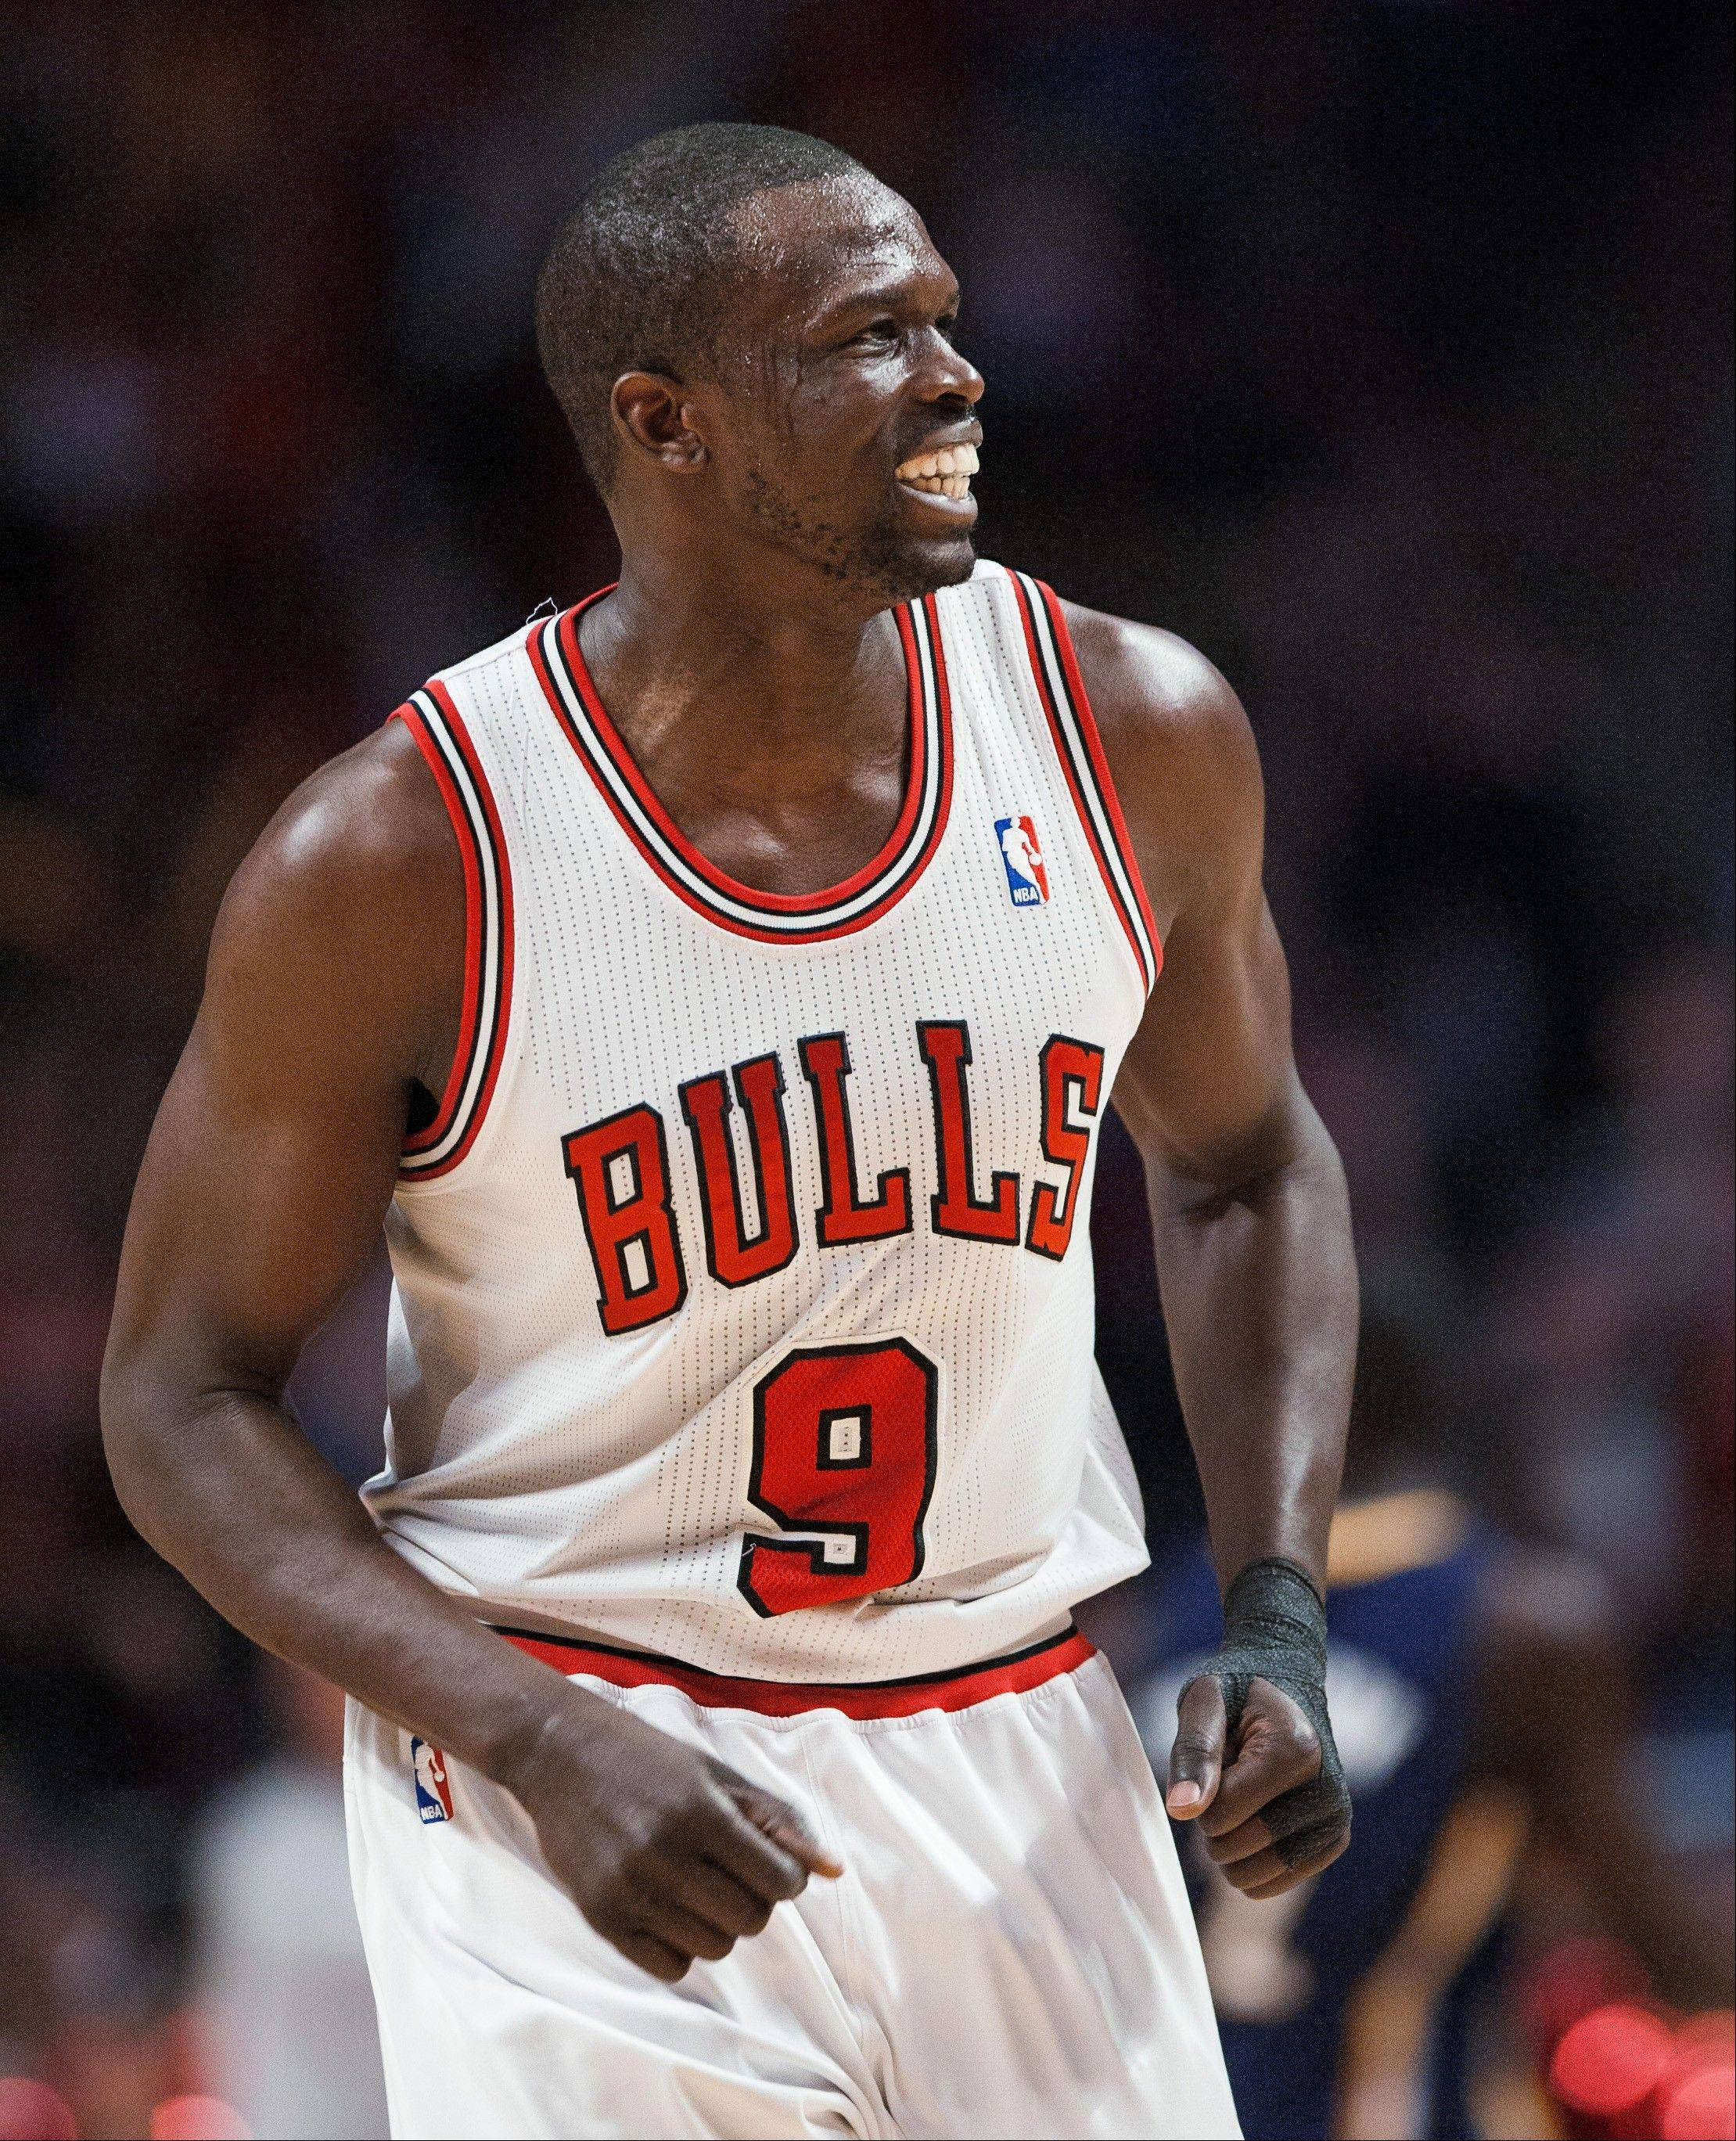 Bulls Luol Deng smiles after making a 3-pointer in the third quarter of the Bulls' 92-72 win over the Indiana Pacers.